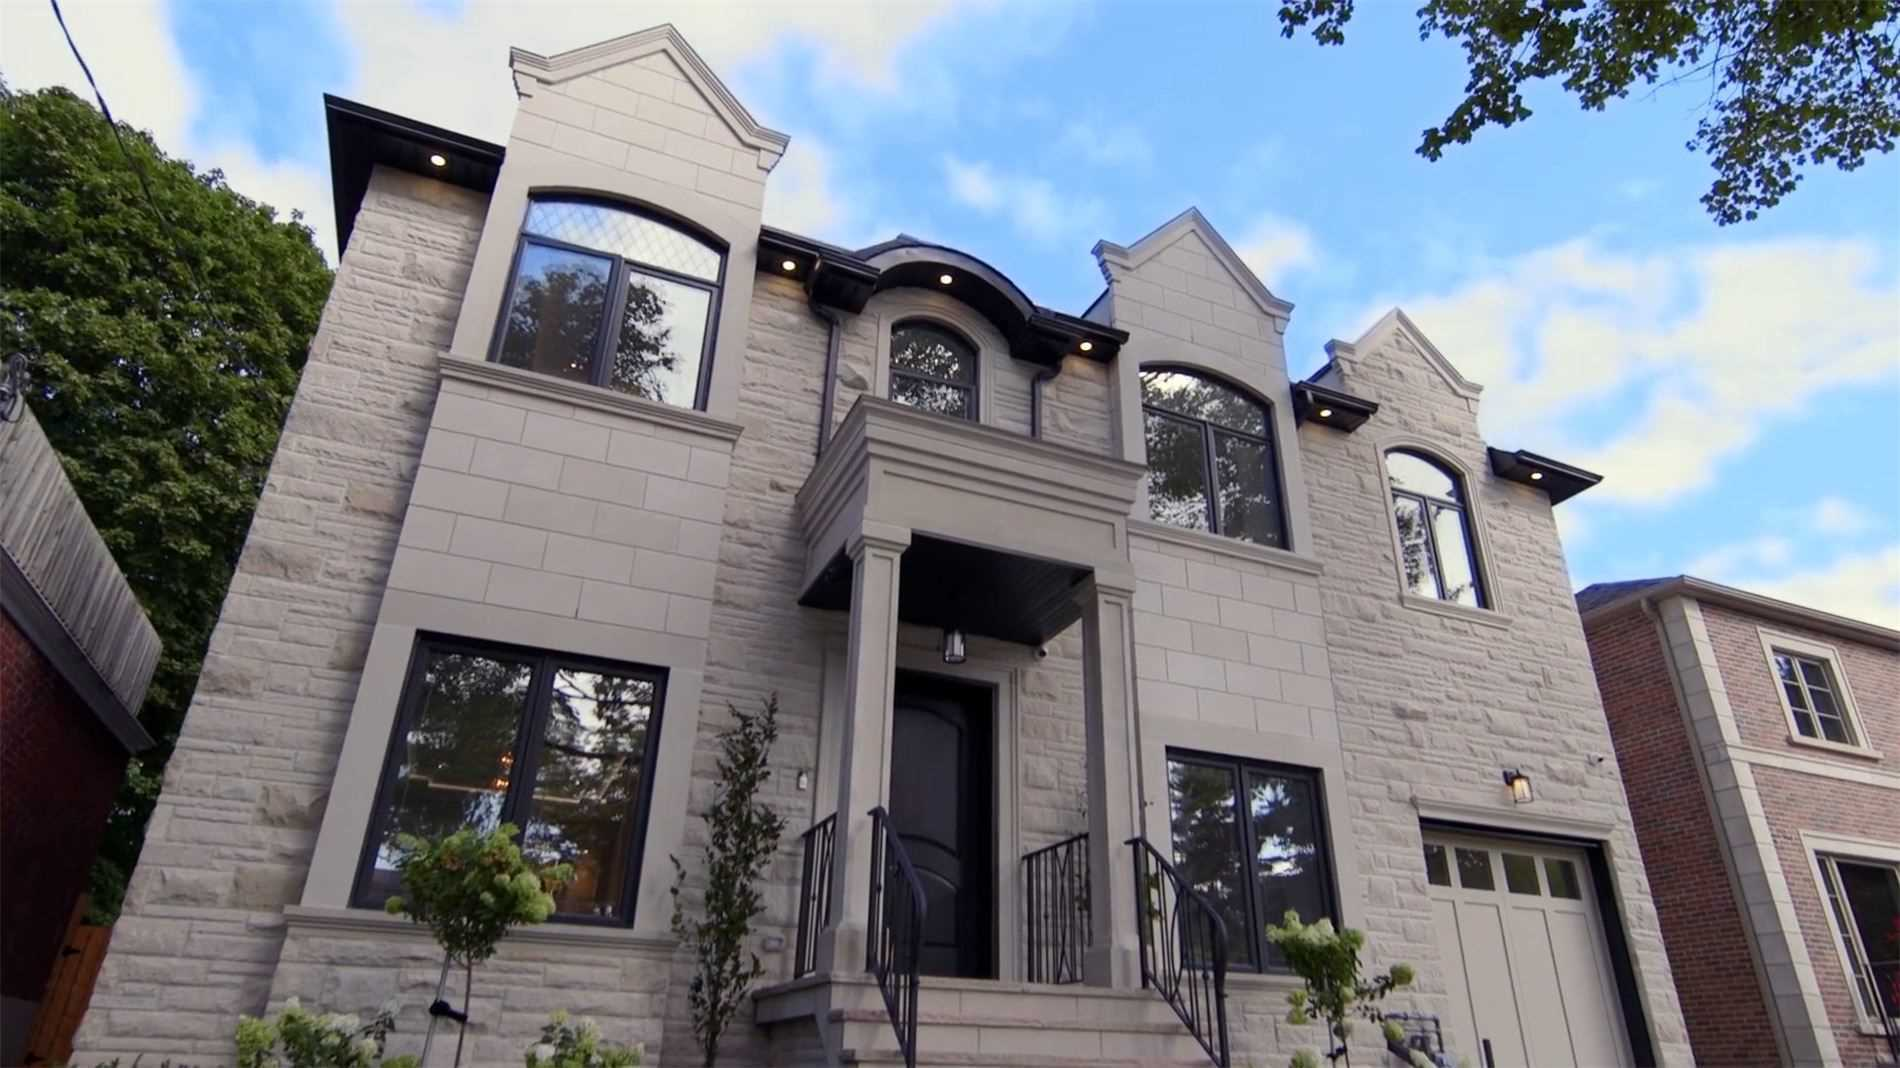 10 Shelborne Ave, Toronto, Ontario M5N 1Y7, 5 Bedrooms Bedrooms, 13 Rooms Rooms,8 BathroomsBathrooms,Detached,For Sale,Shelborne,C4921978